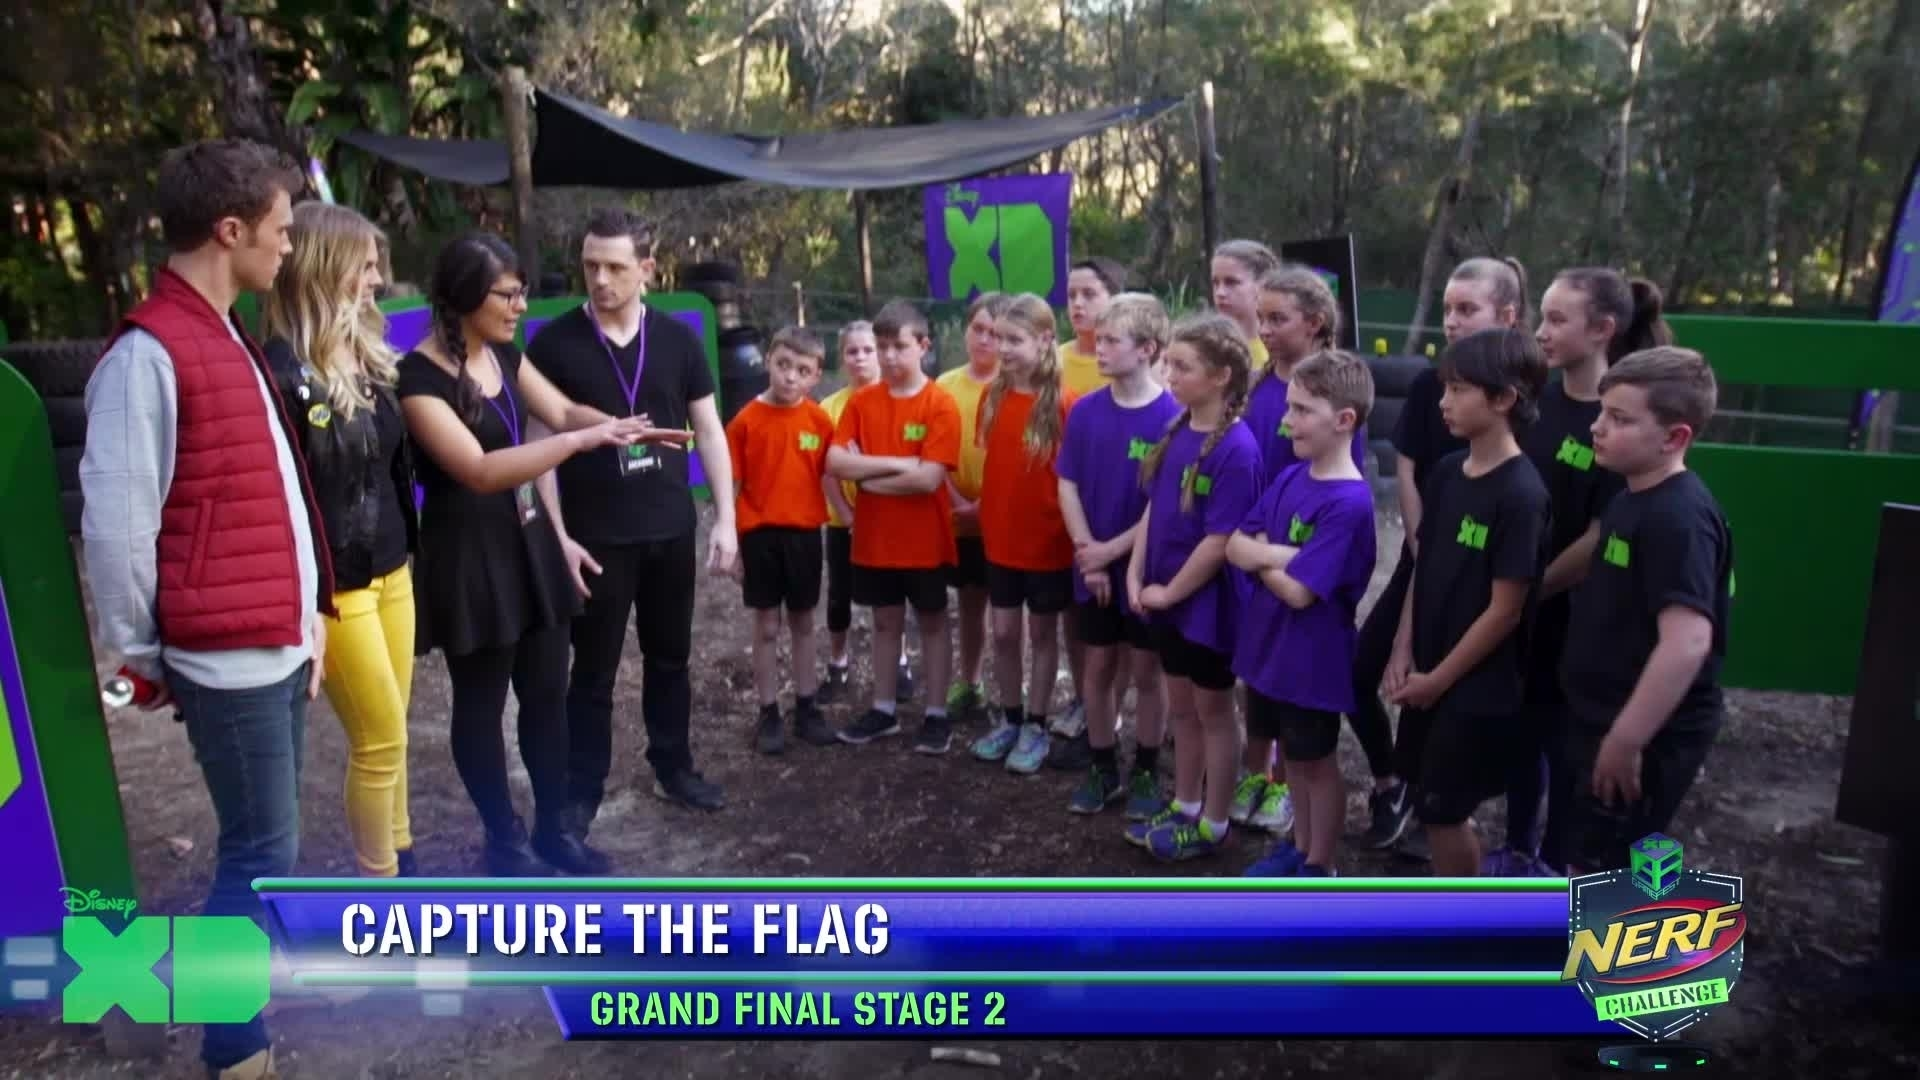 NERF Challenge: Grand Final